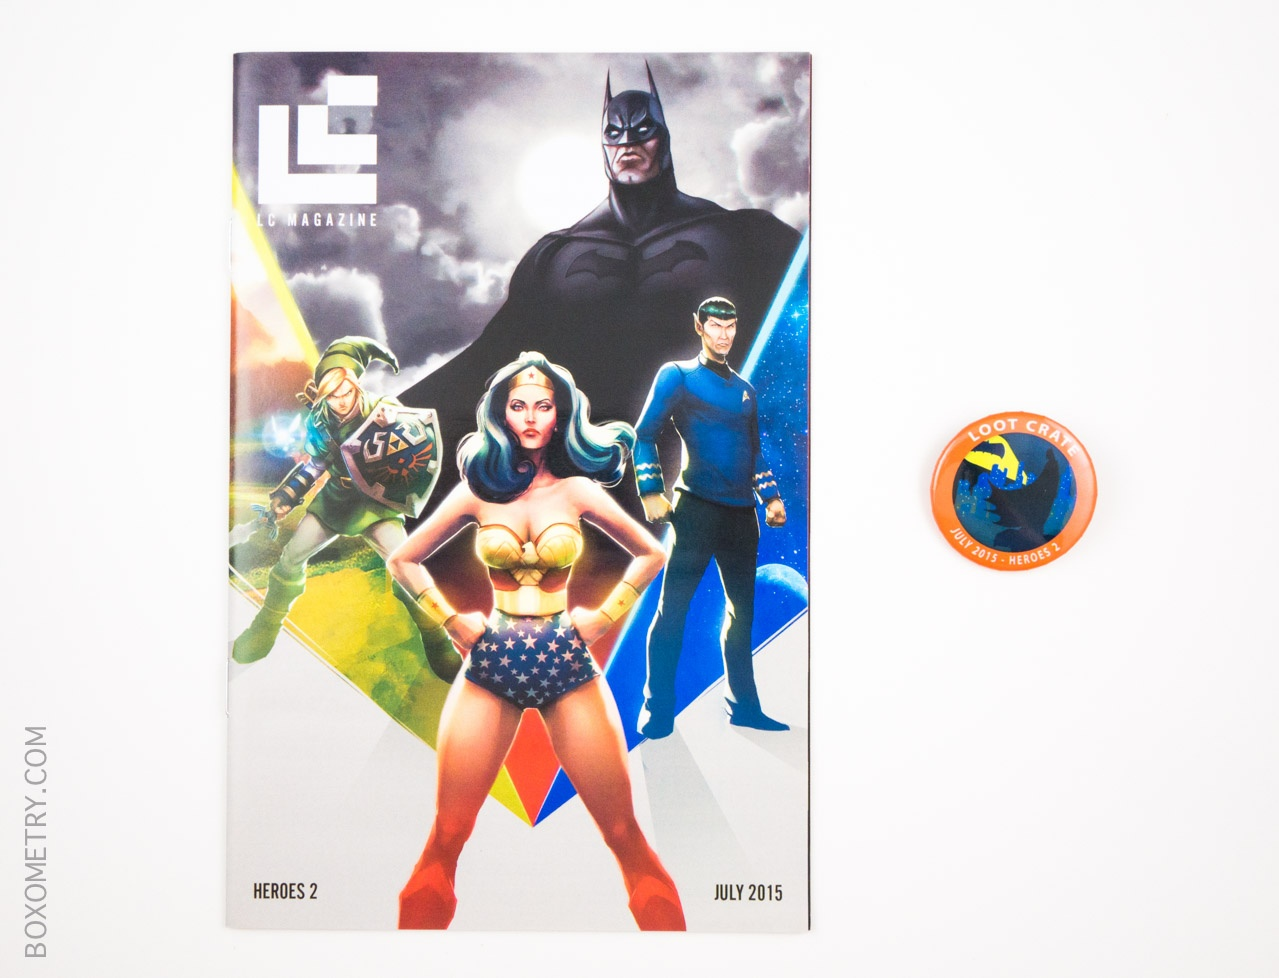 Boxometry Loot Crate July 2015 Review - Mini Magazine and Heroes 2 Pin